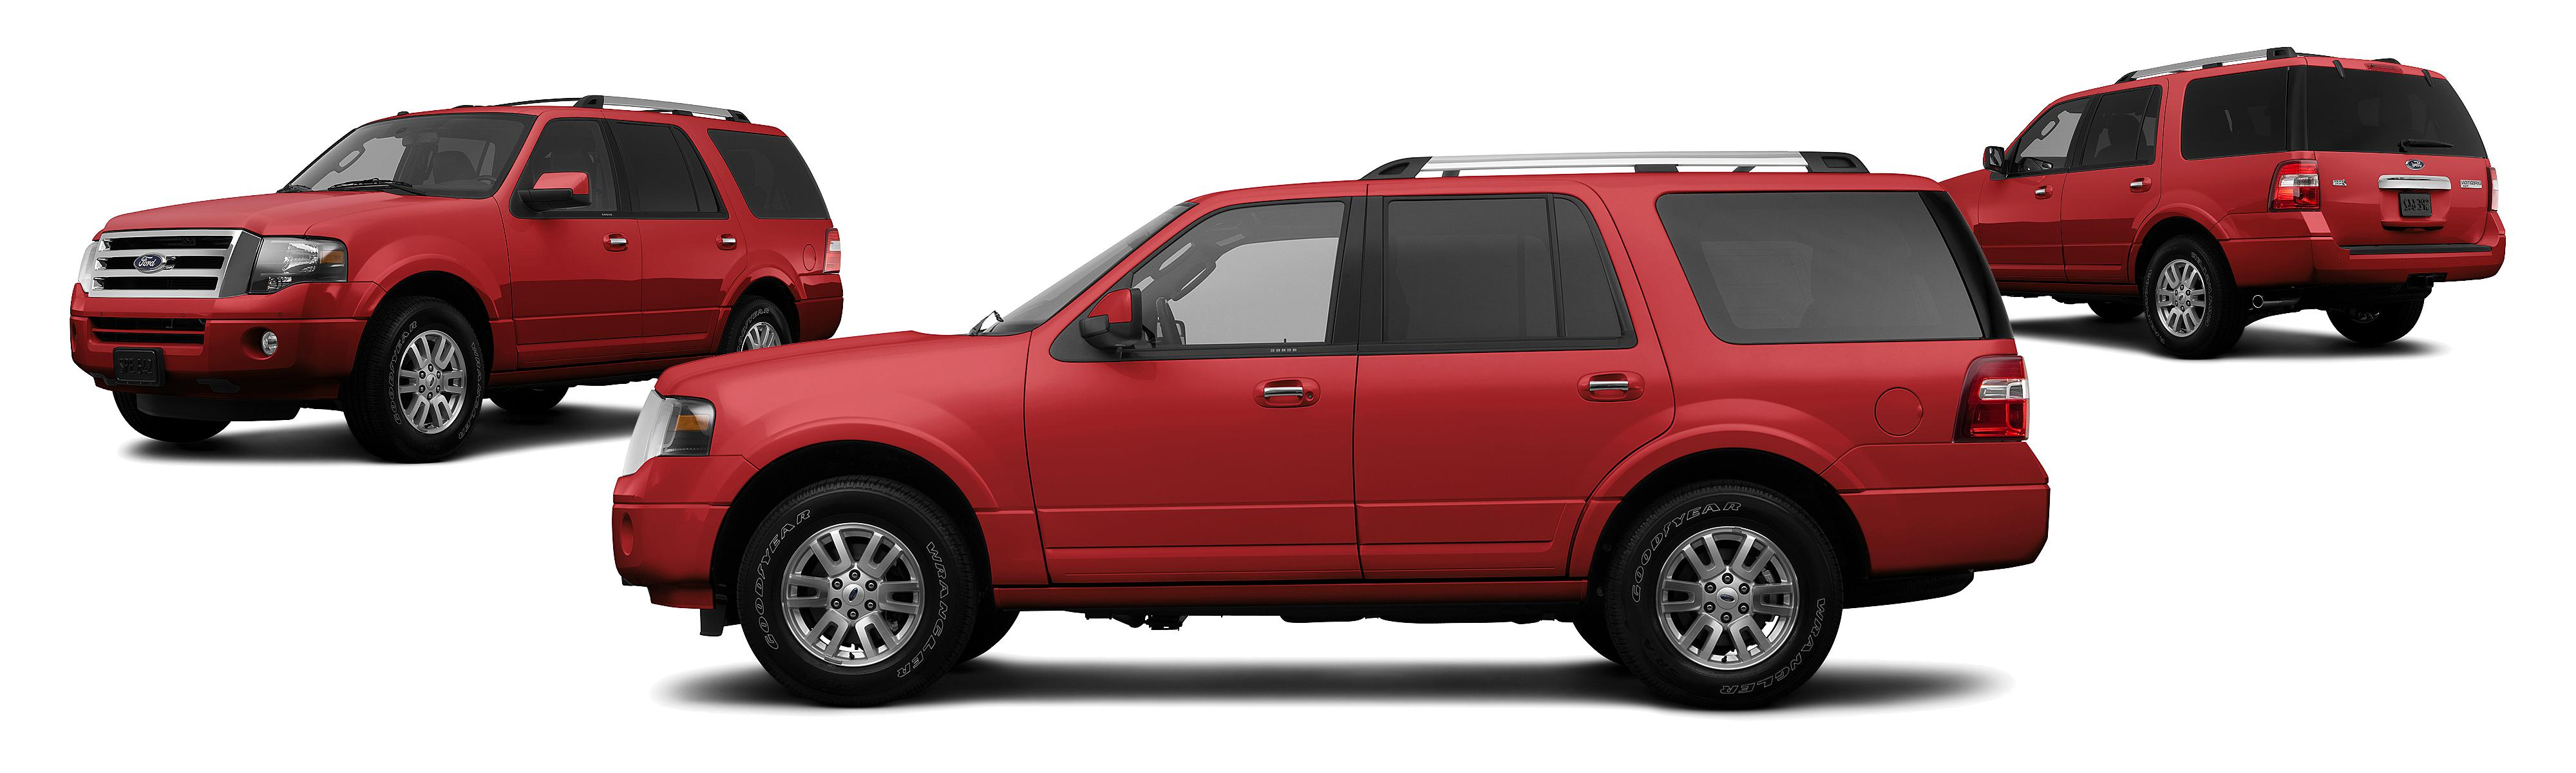 dealership ford expedition listings full dsc proauto